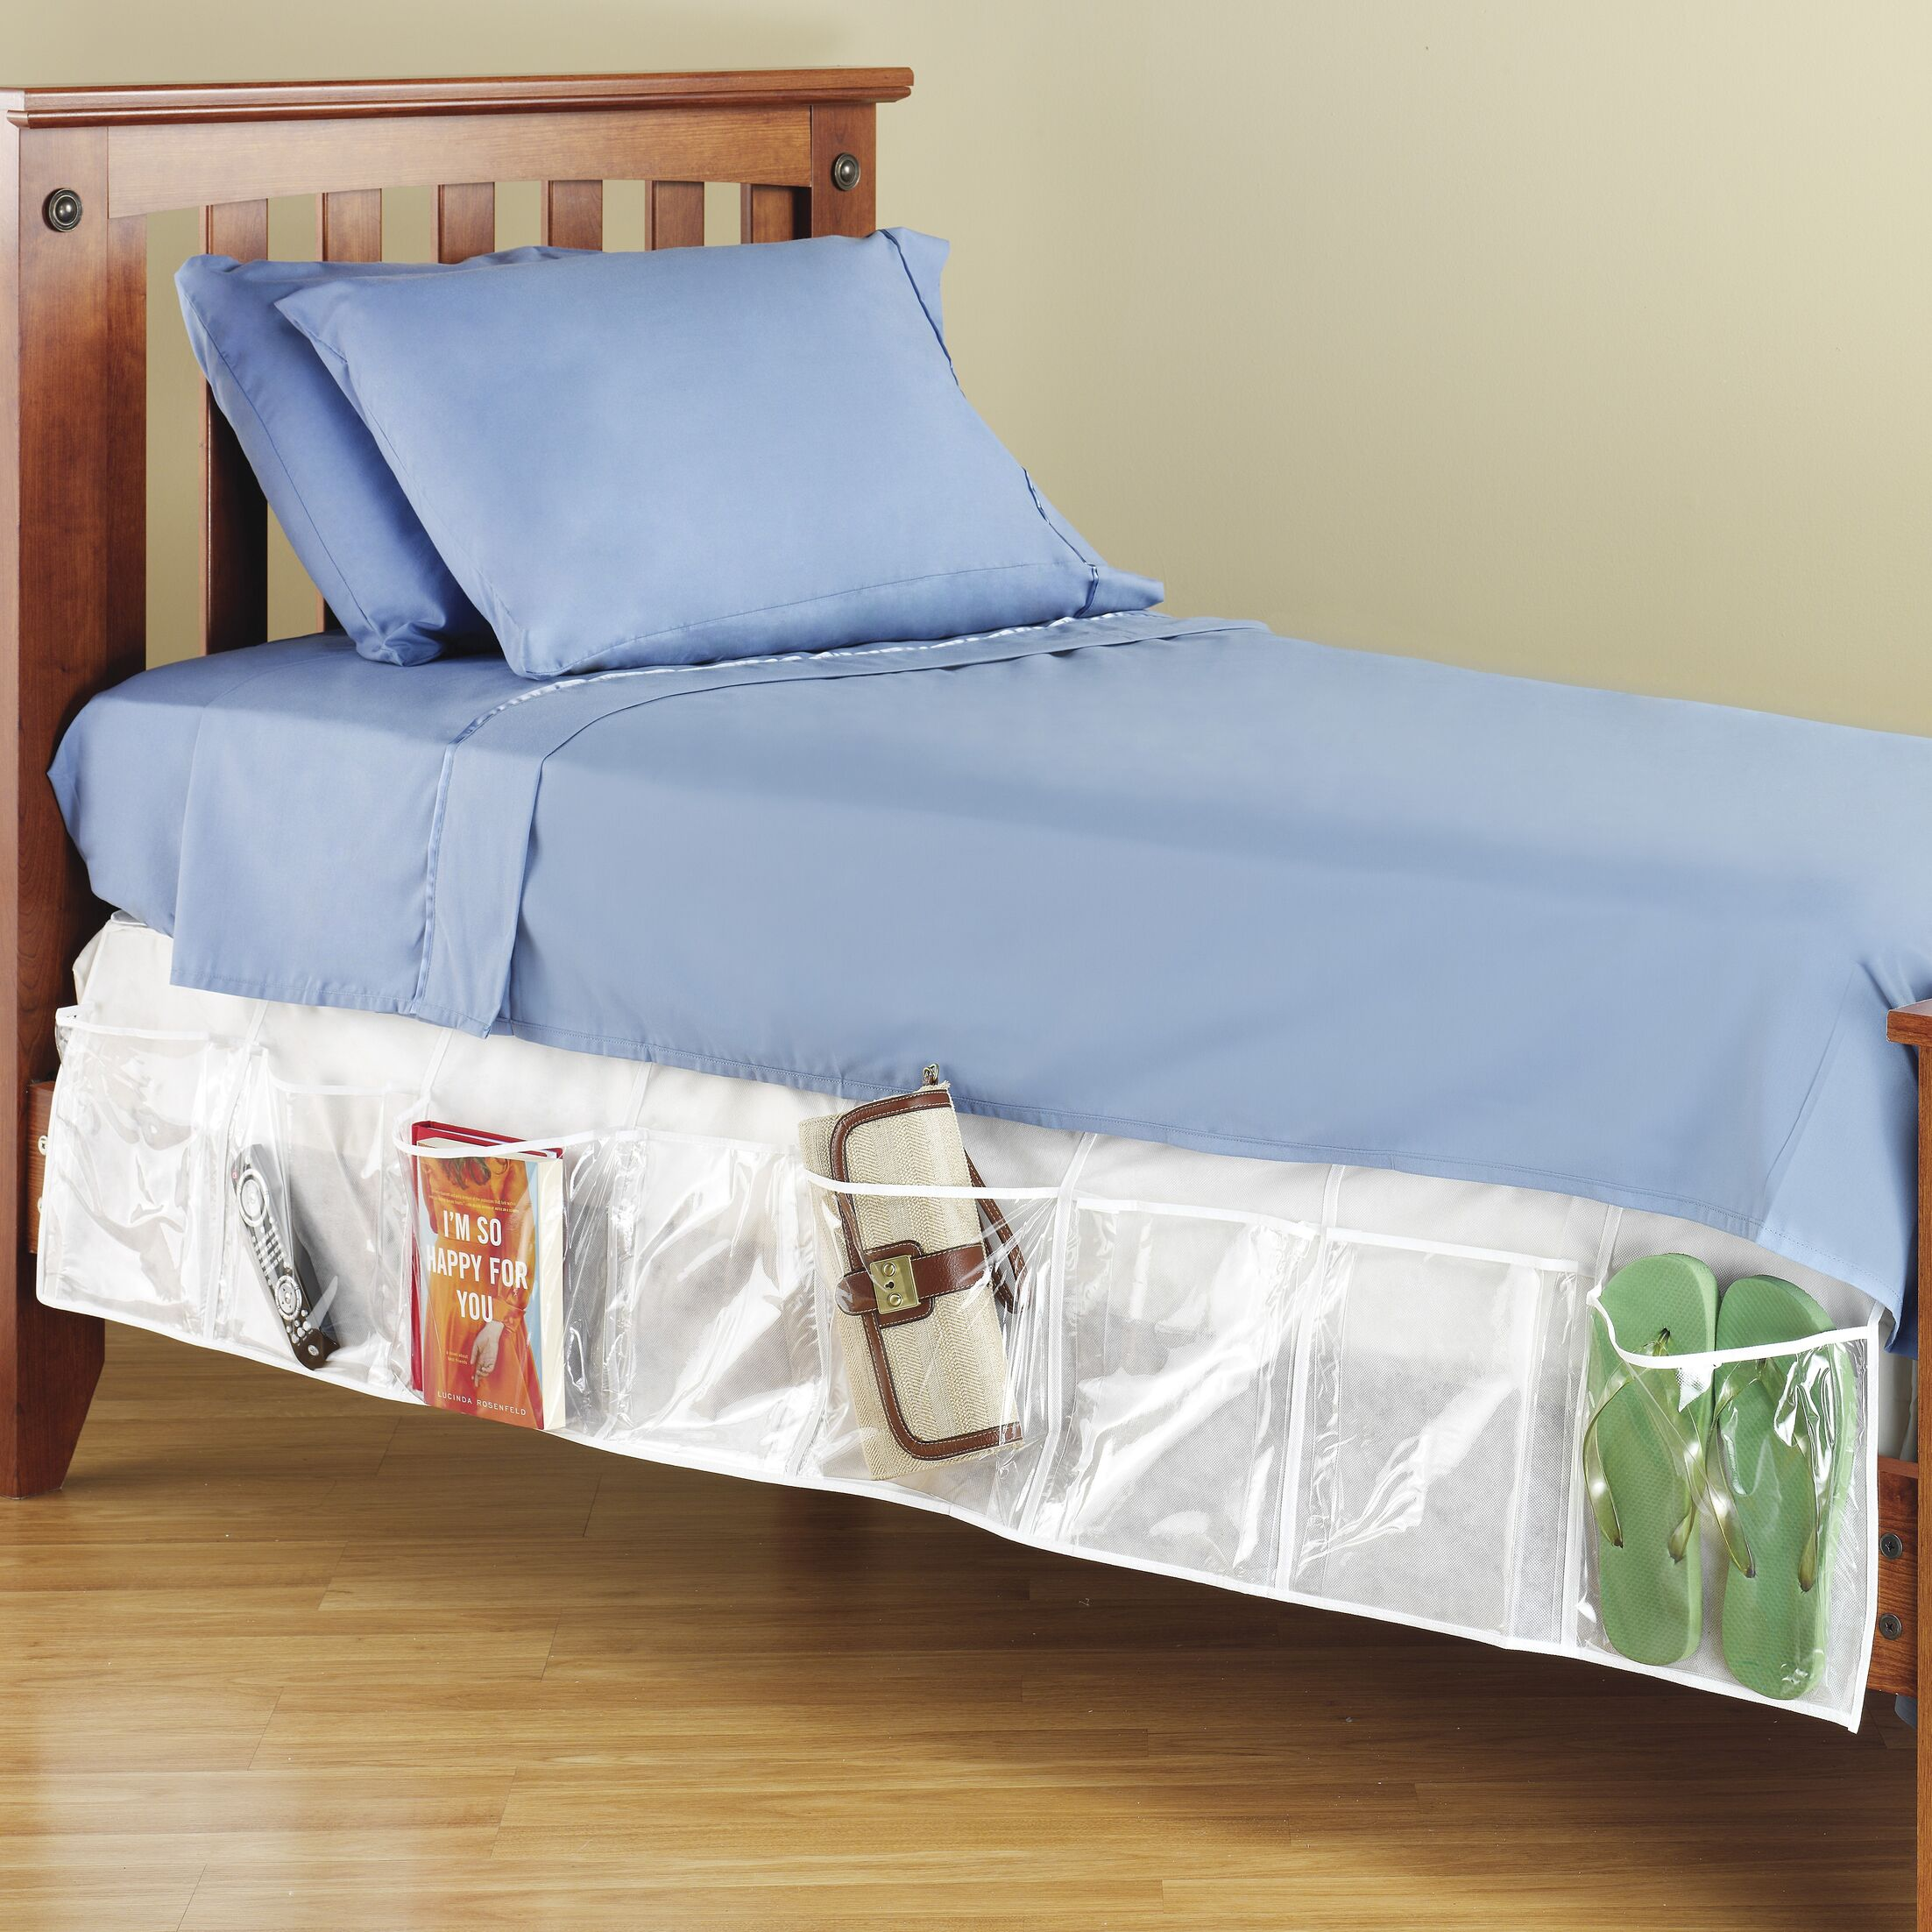 Bed Skirt Organizer